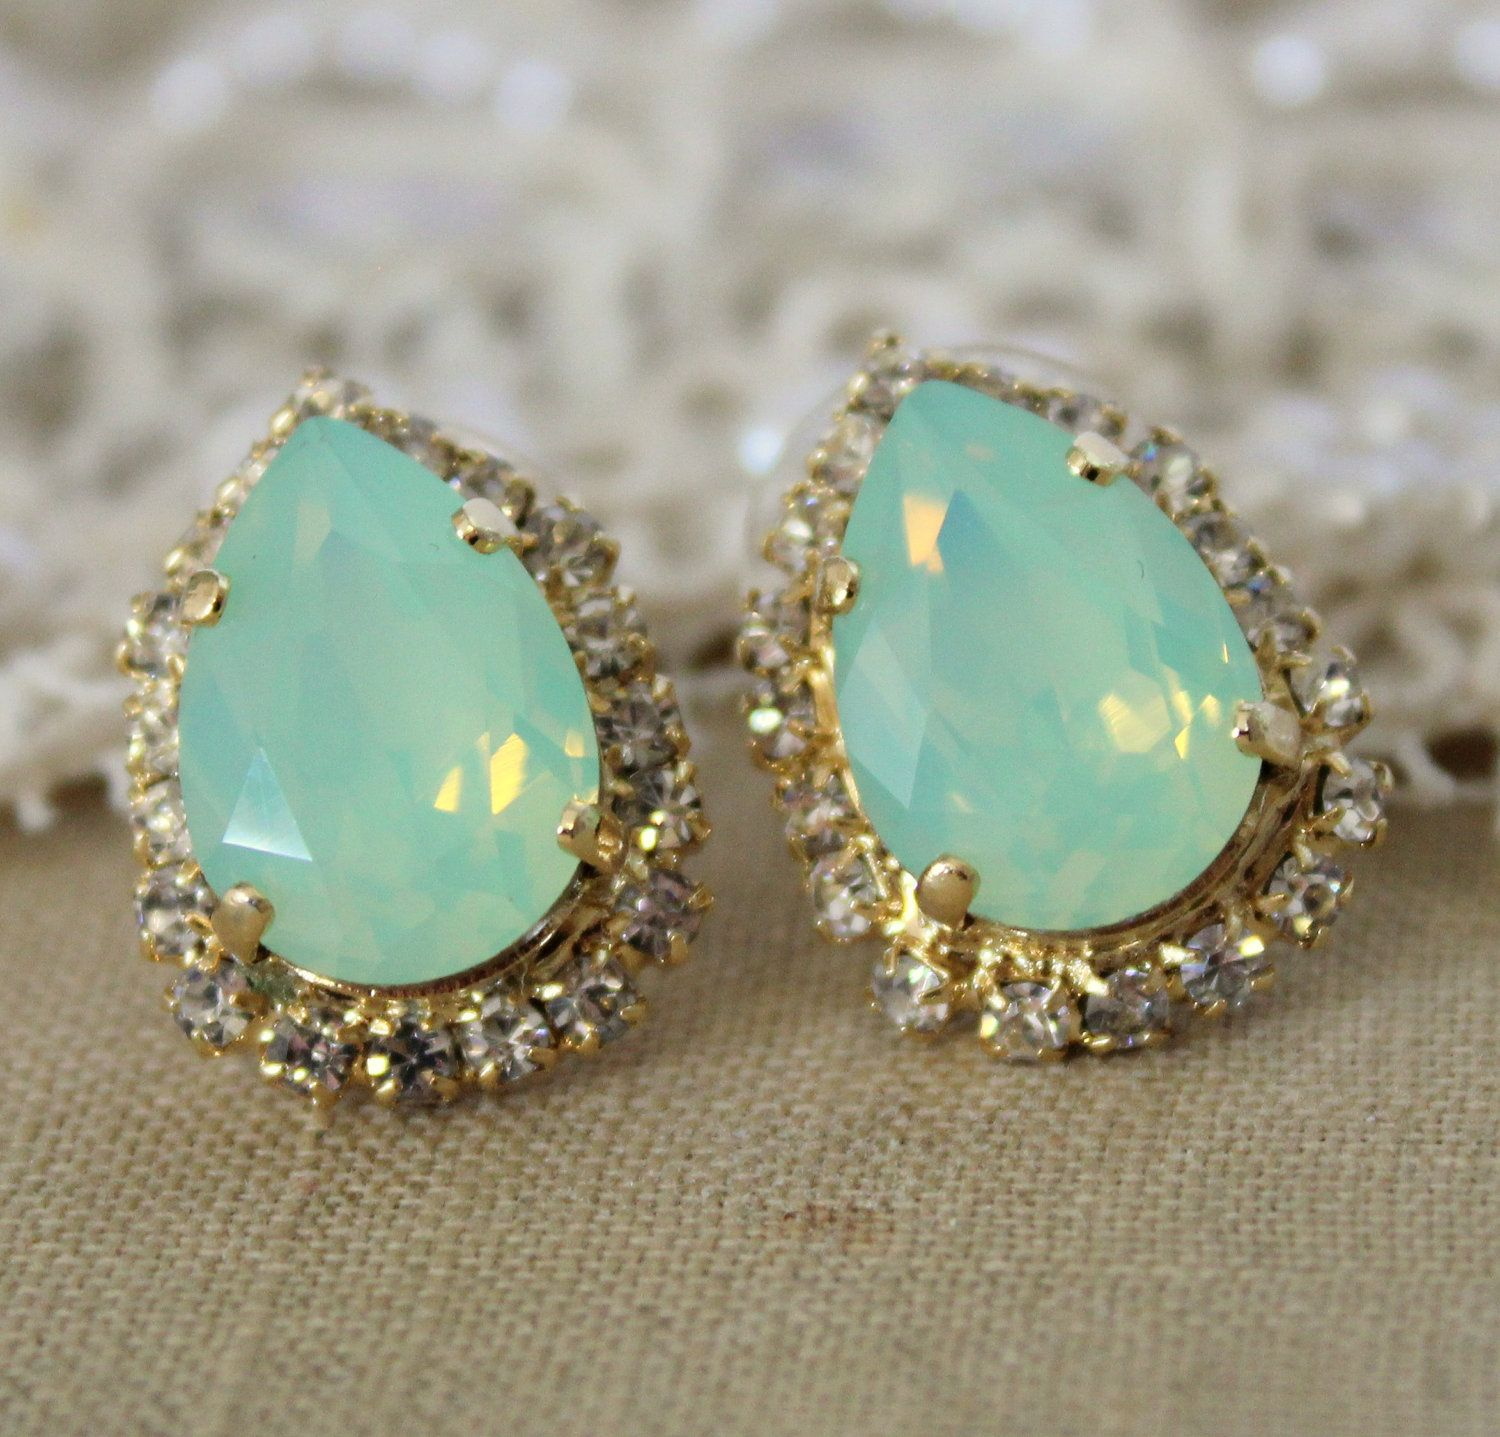 australia real oval gold opal studs flashopal earrings genuine australian white stud jewelry blue